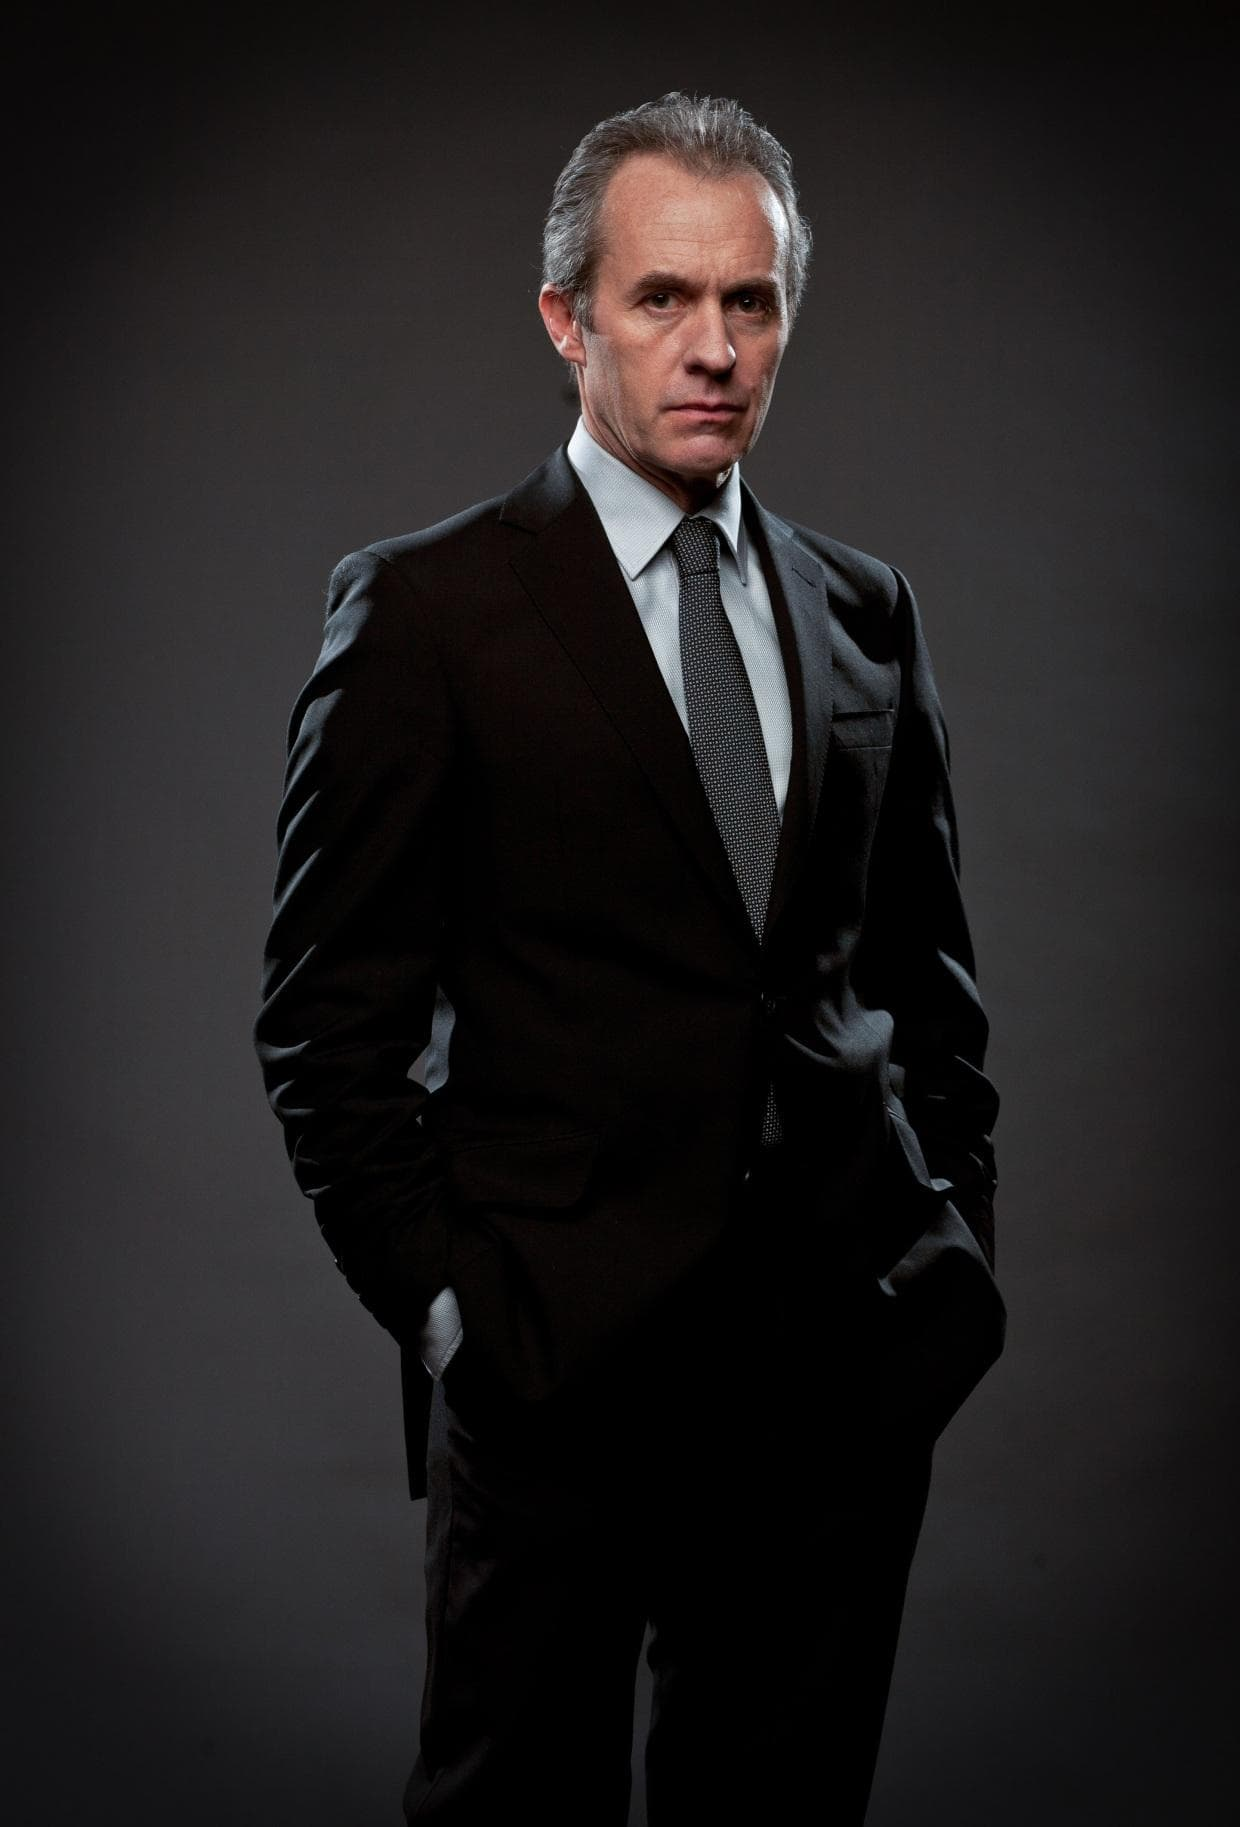 Stephen Dillane For mobile